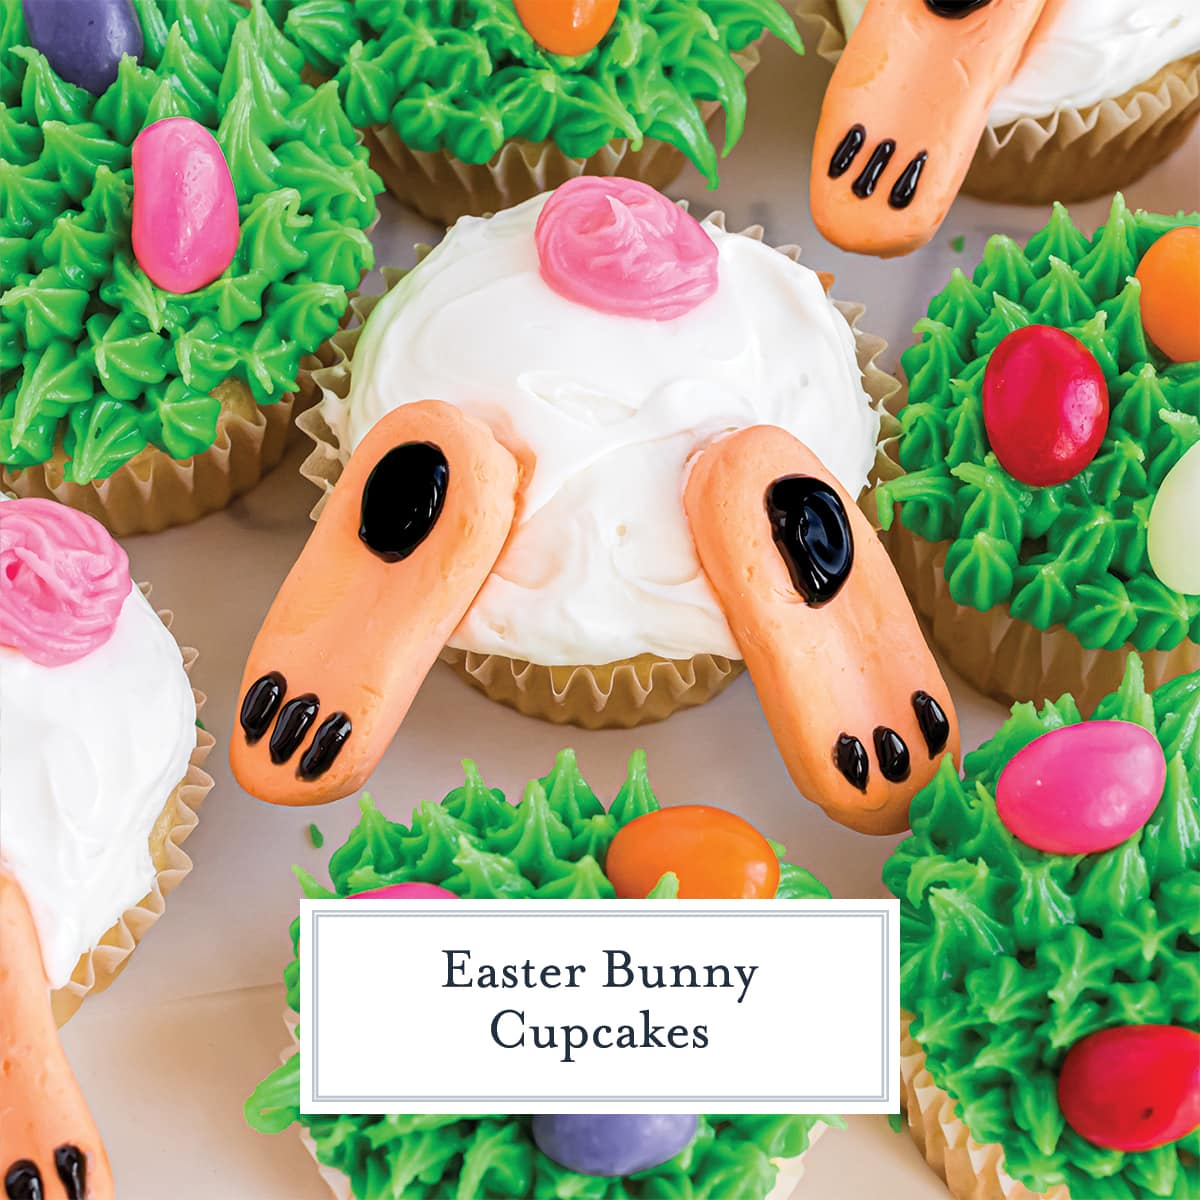 close up of bunny butt cupcake in grass with jelly beans